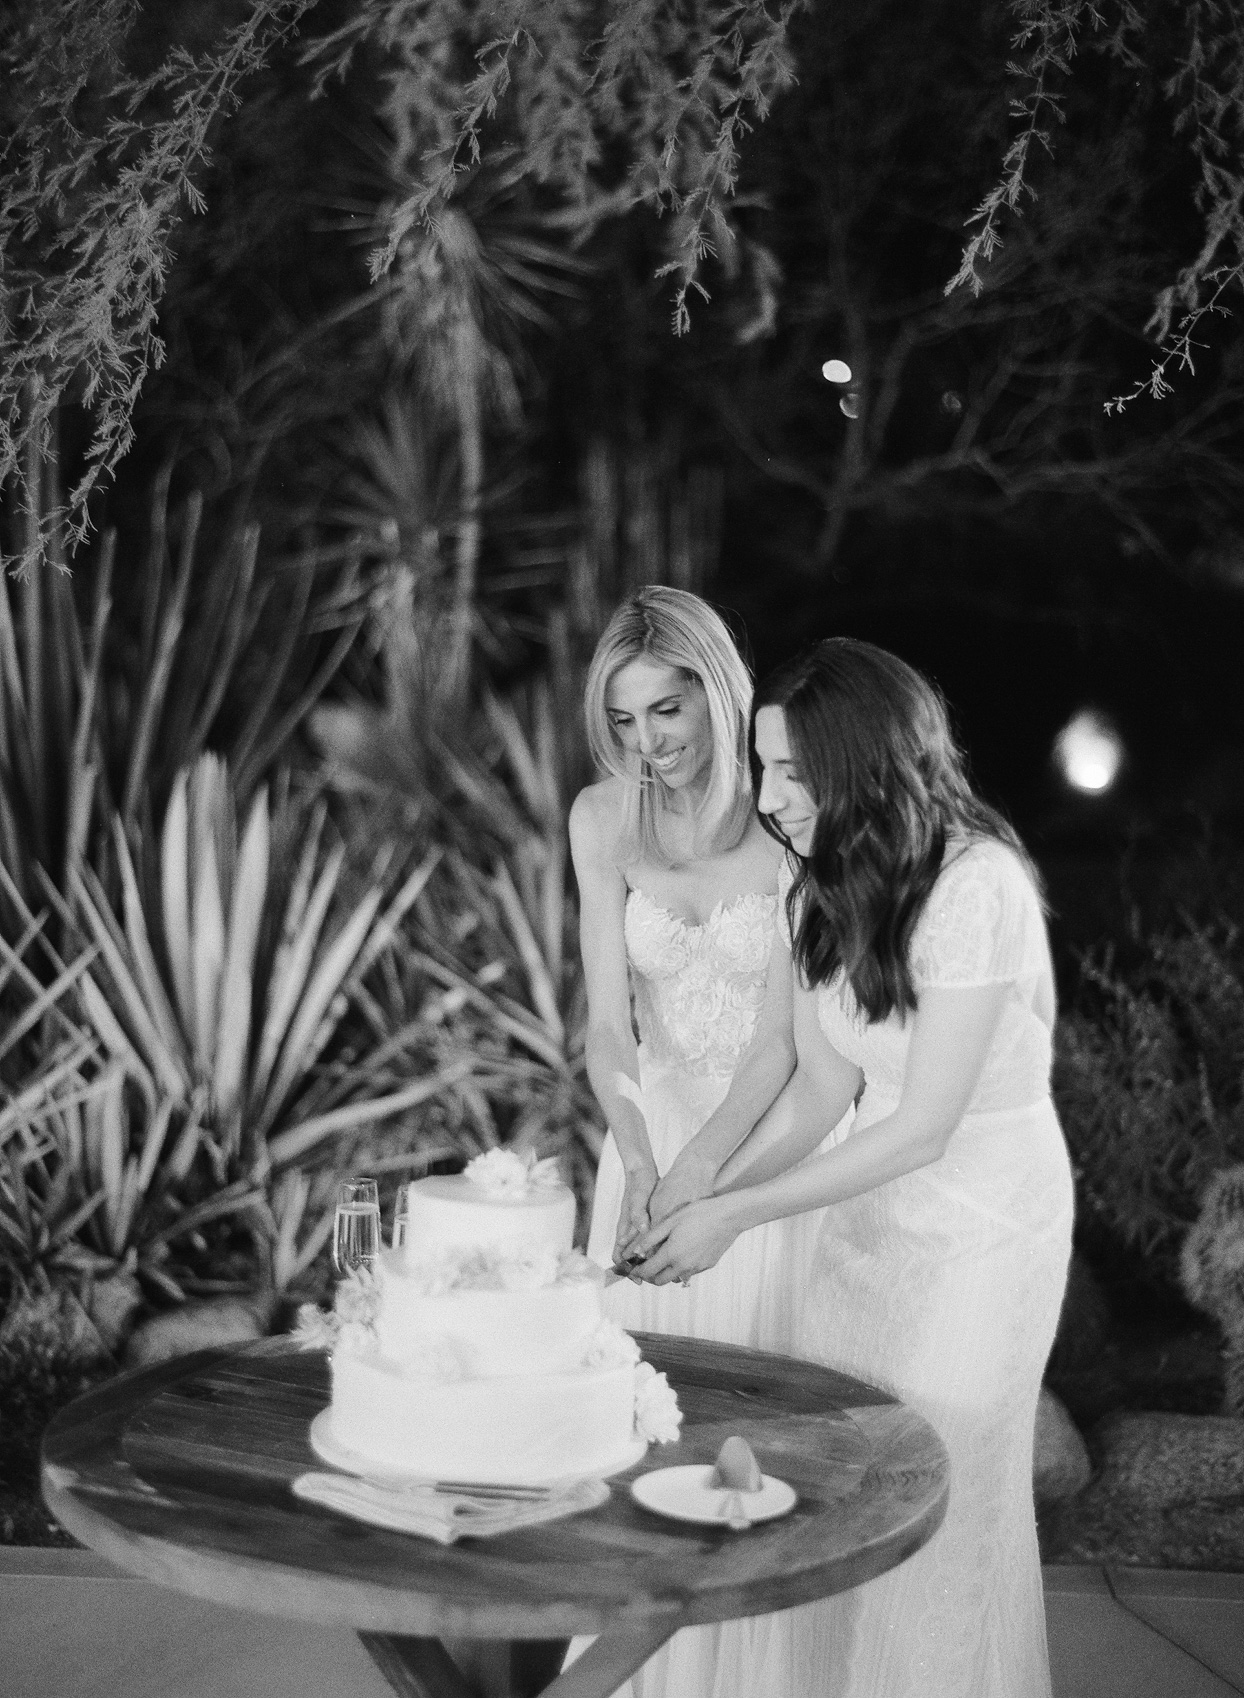 brides cutting cake together at wedding reception